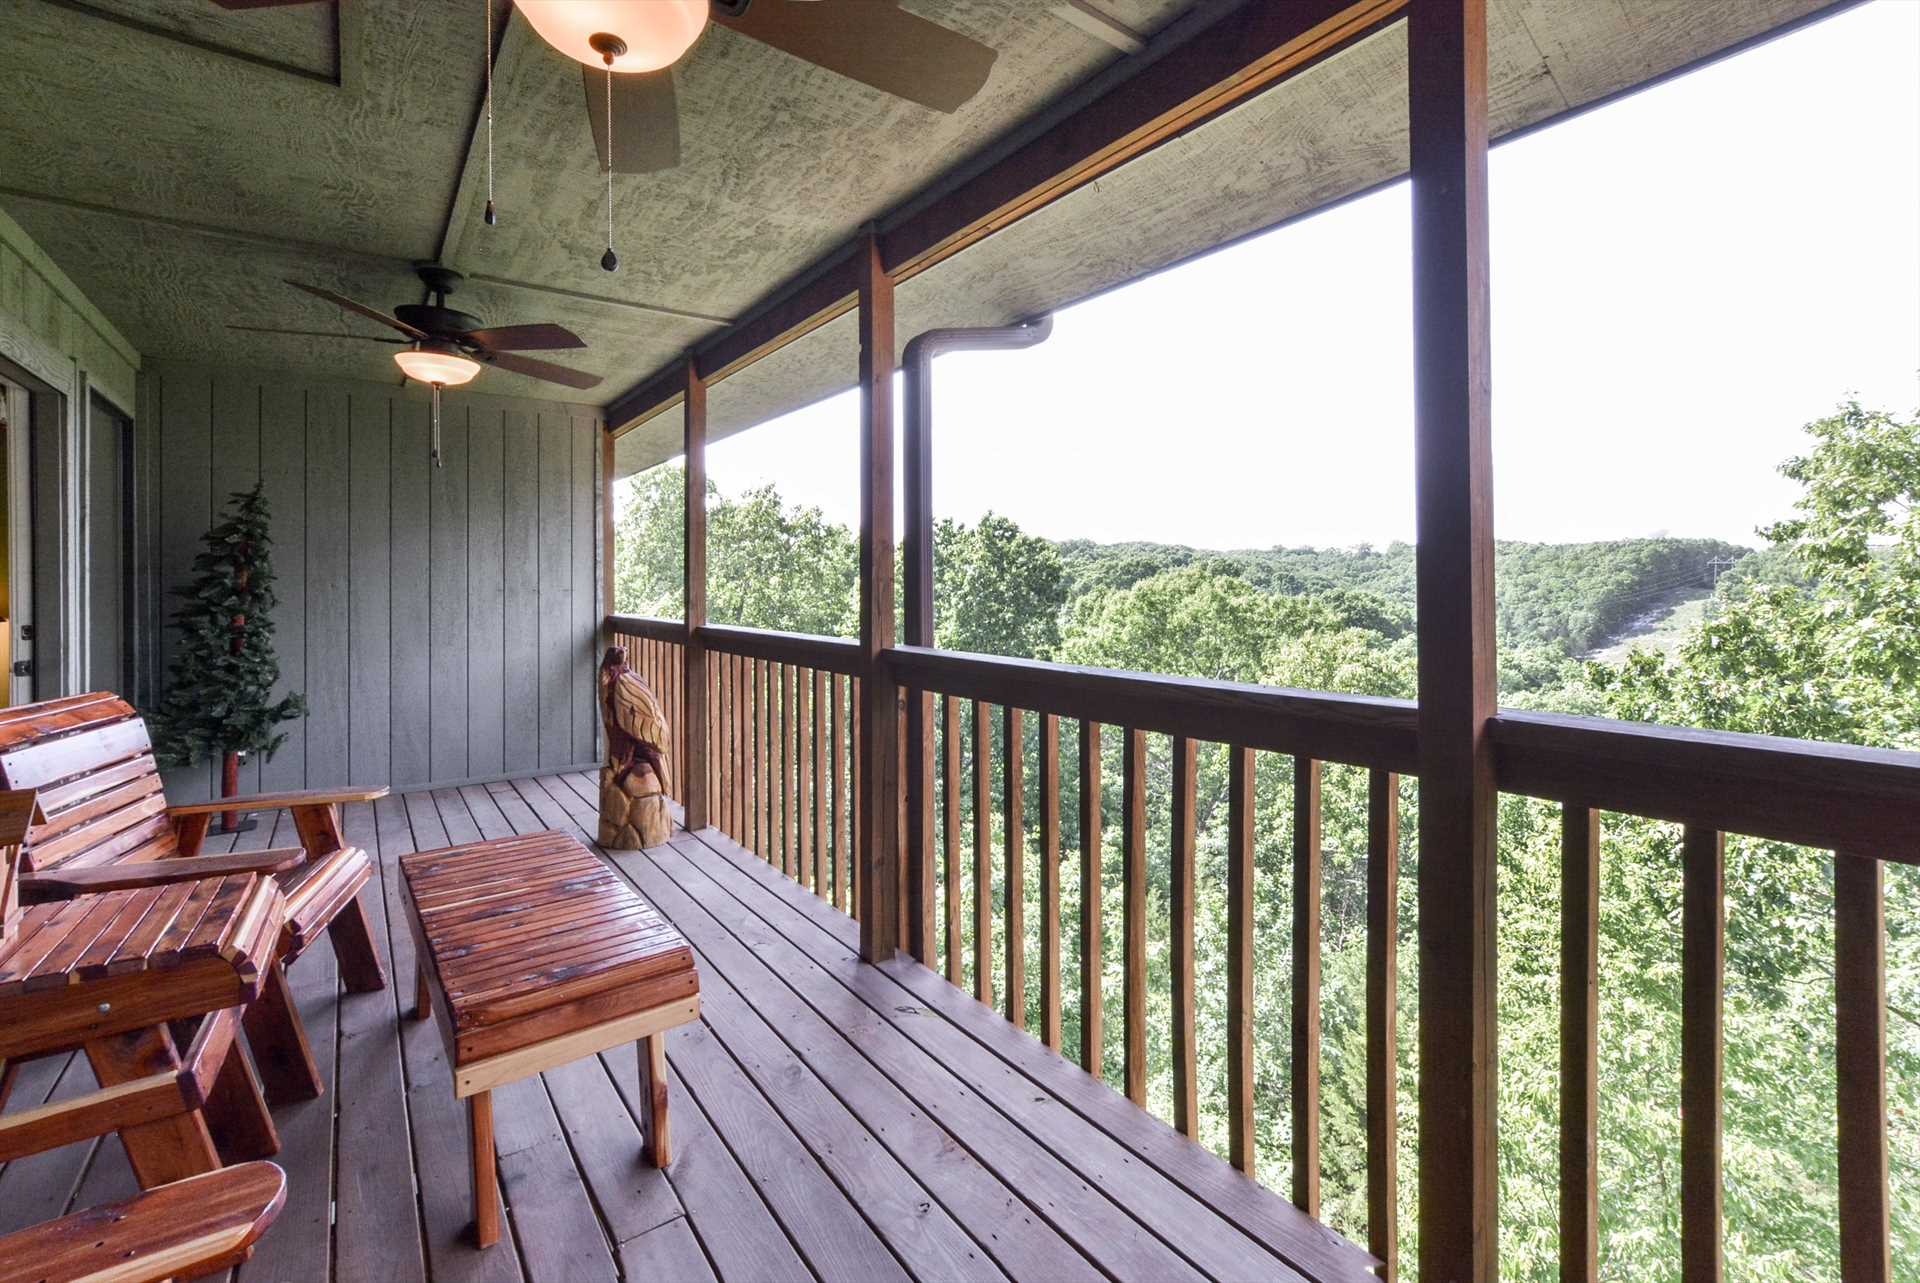 The private deck has stunning views of the acres of nature a